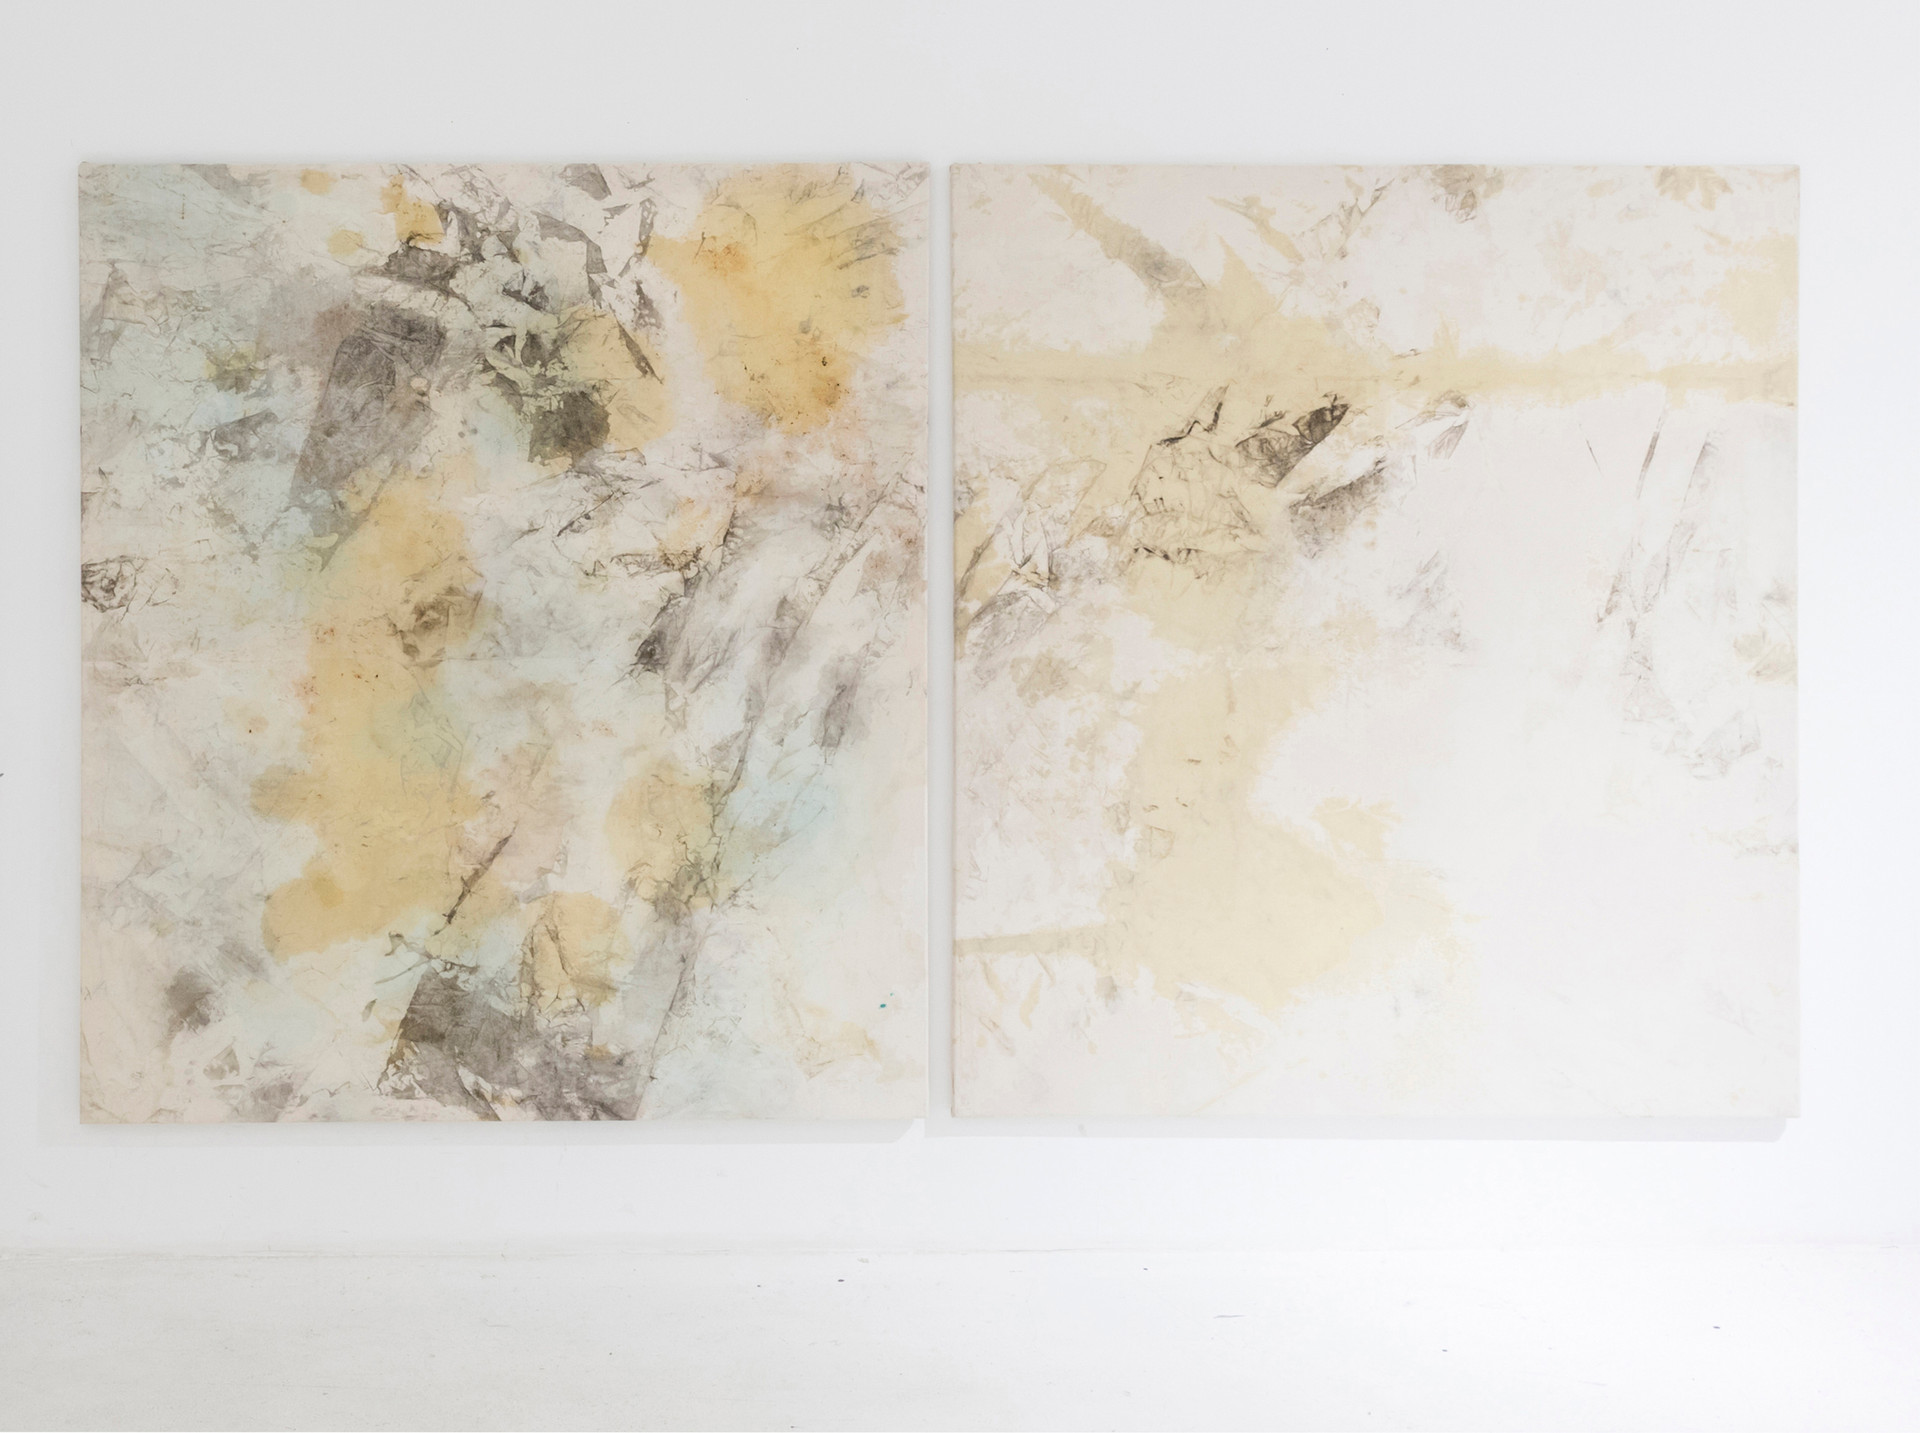 N.Lichtig, Blank spots, two frottages stretched, 160x170 cm each